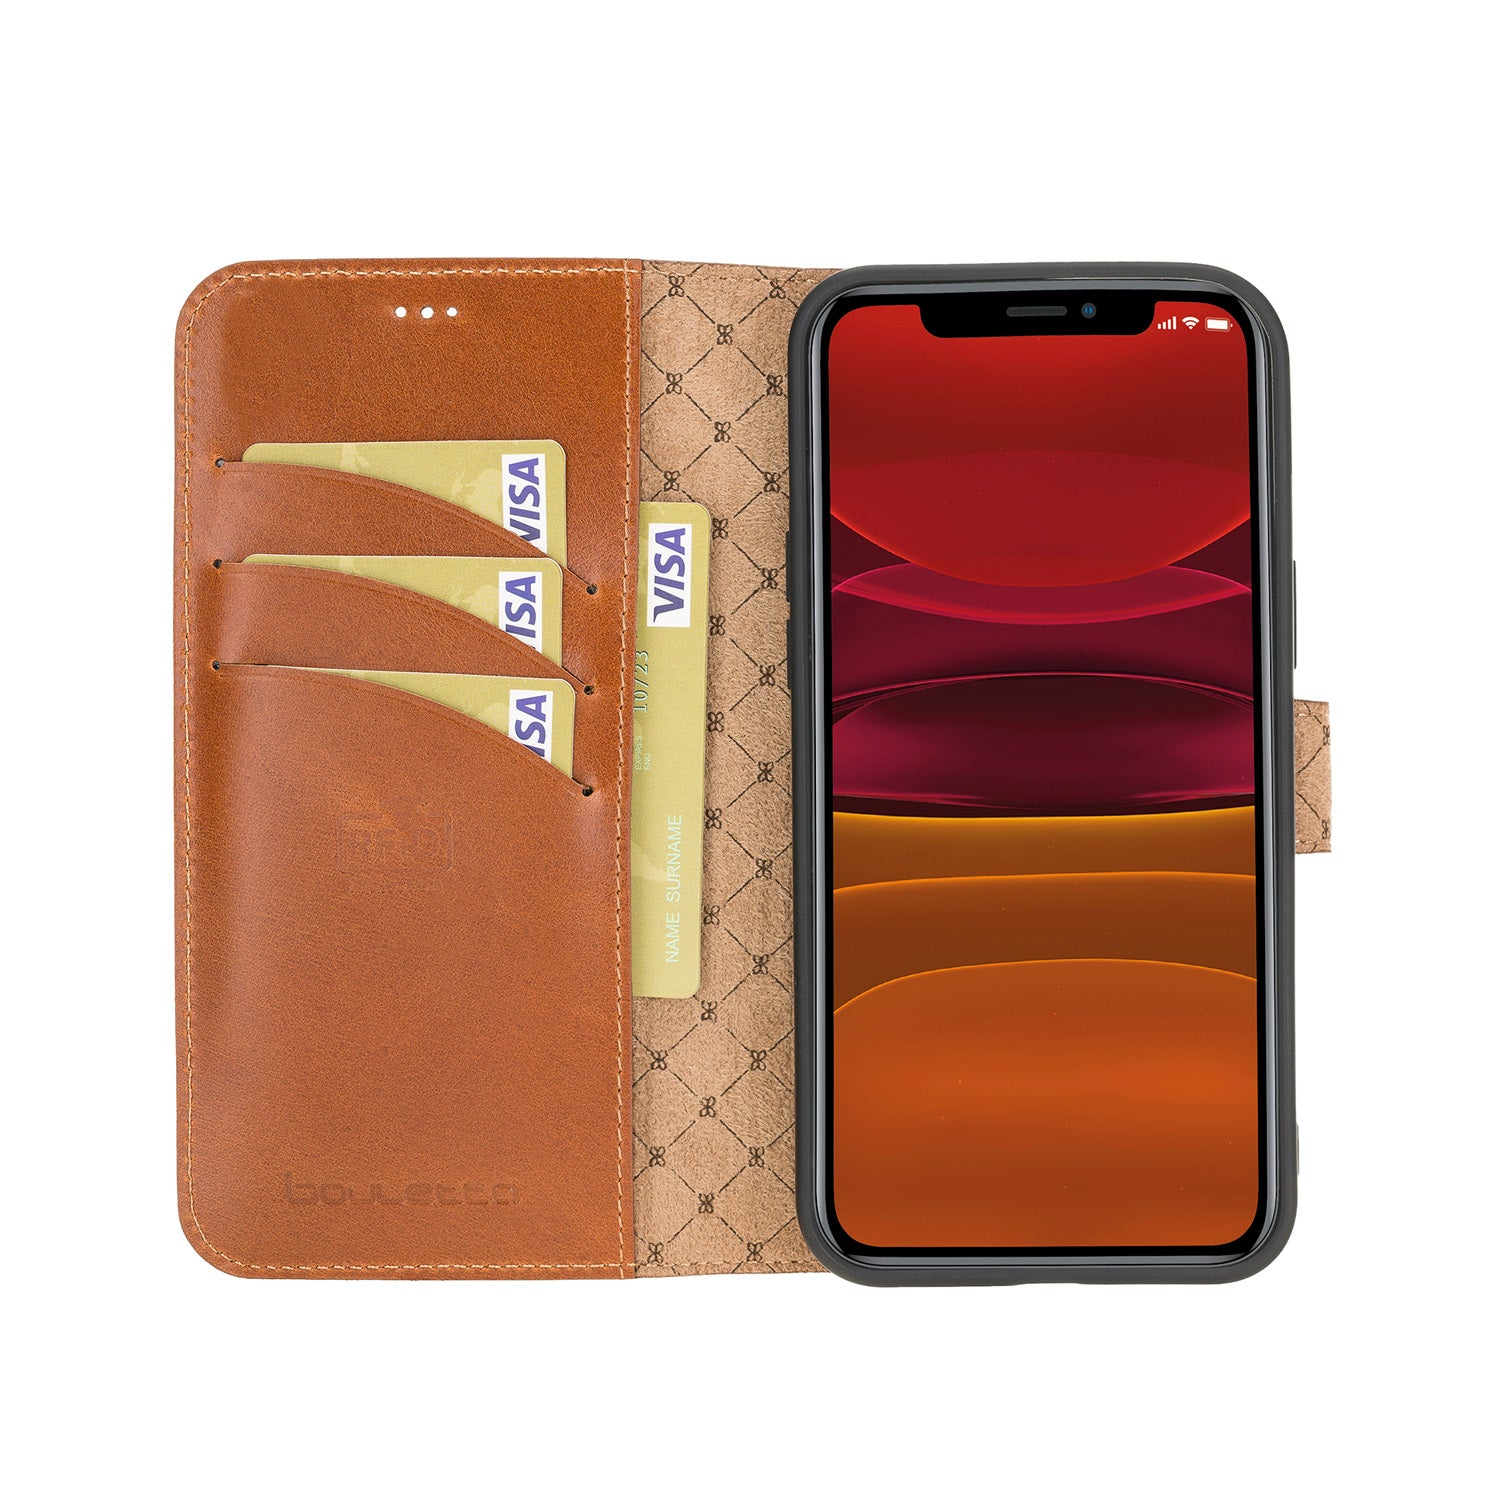 "Wallet Folio Leather Case with RFID for iPhone 12 Mini (5.4"") - EFFECT BROWN - saracleather"